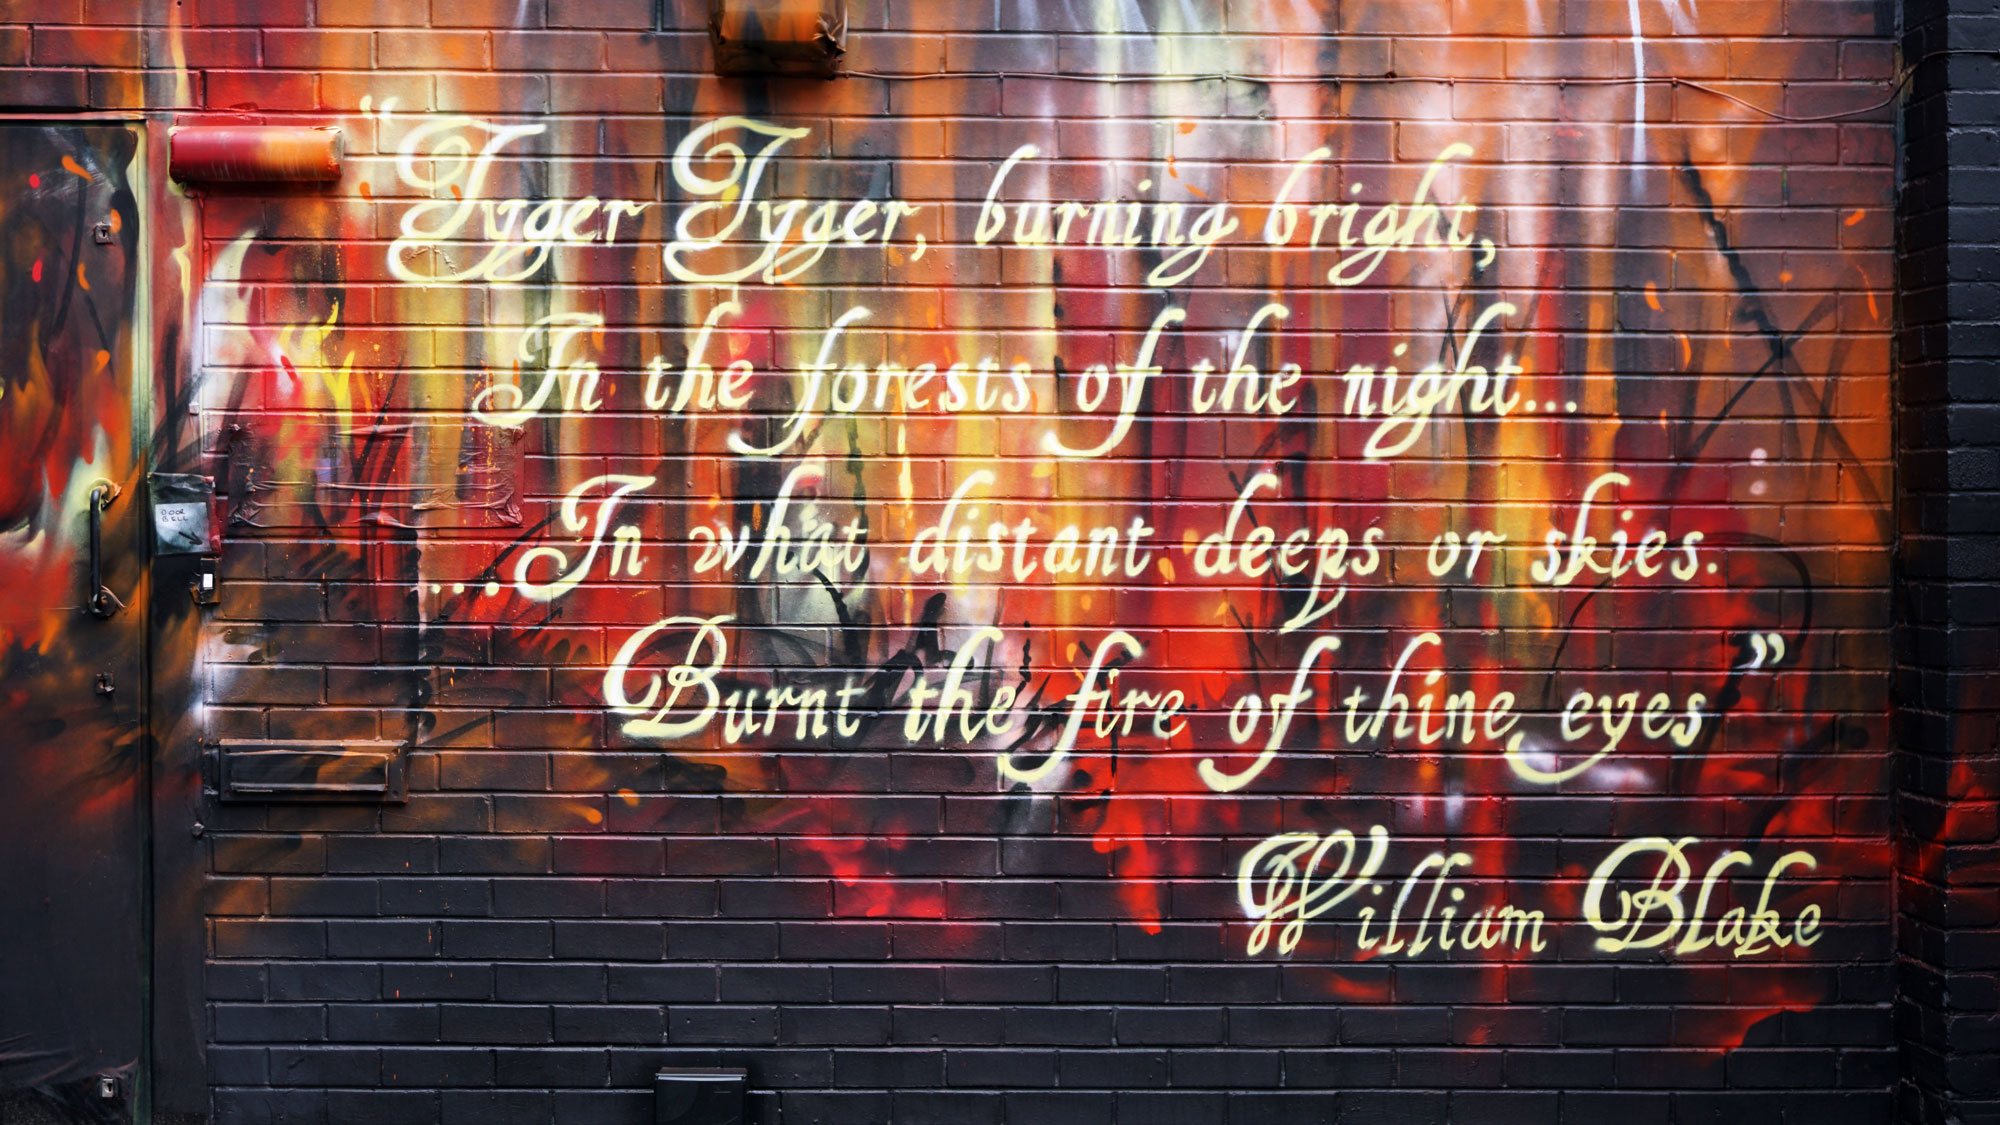 Powerful 'Tyger Tyger Burning Bright' Large Scale Street Art Mural Painted By Jim Vision In Manchester: A Visual Comment On Humanity And The Fierce Power Of The Human Soul